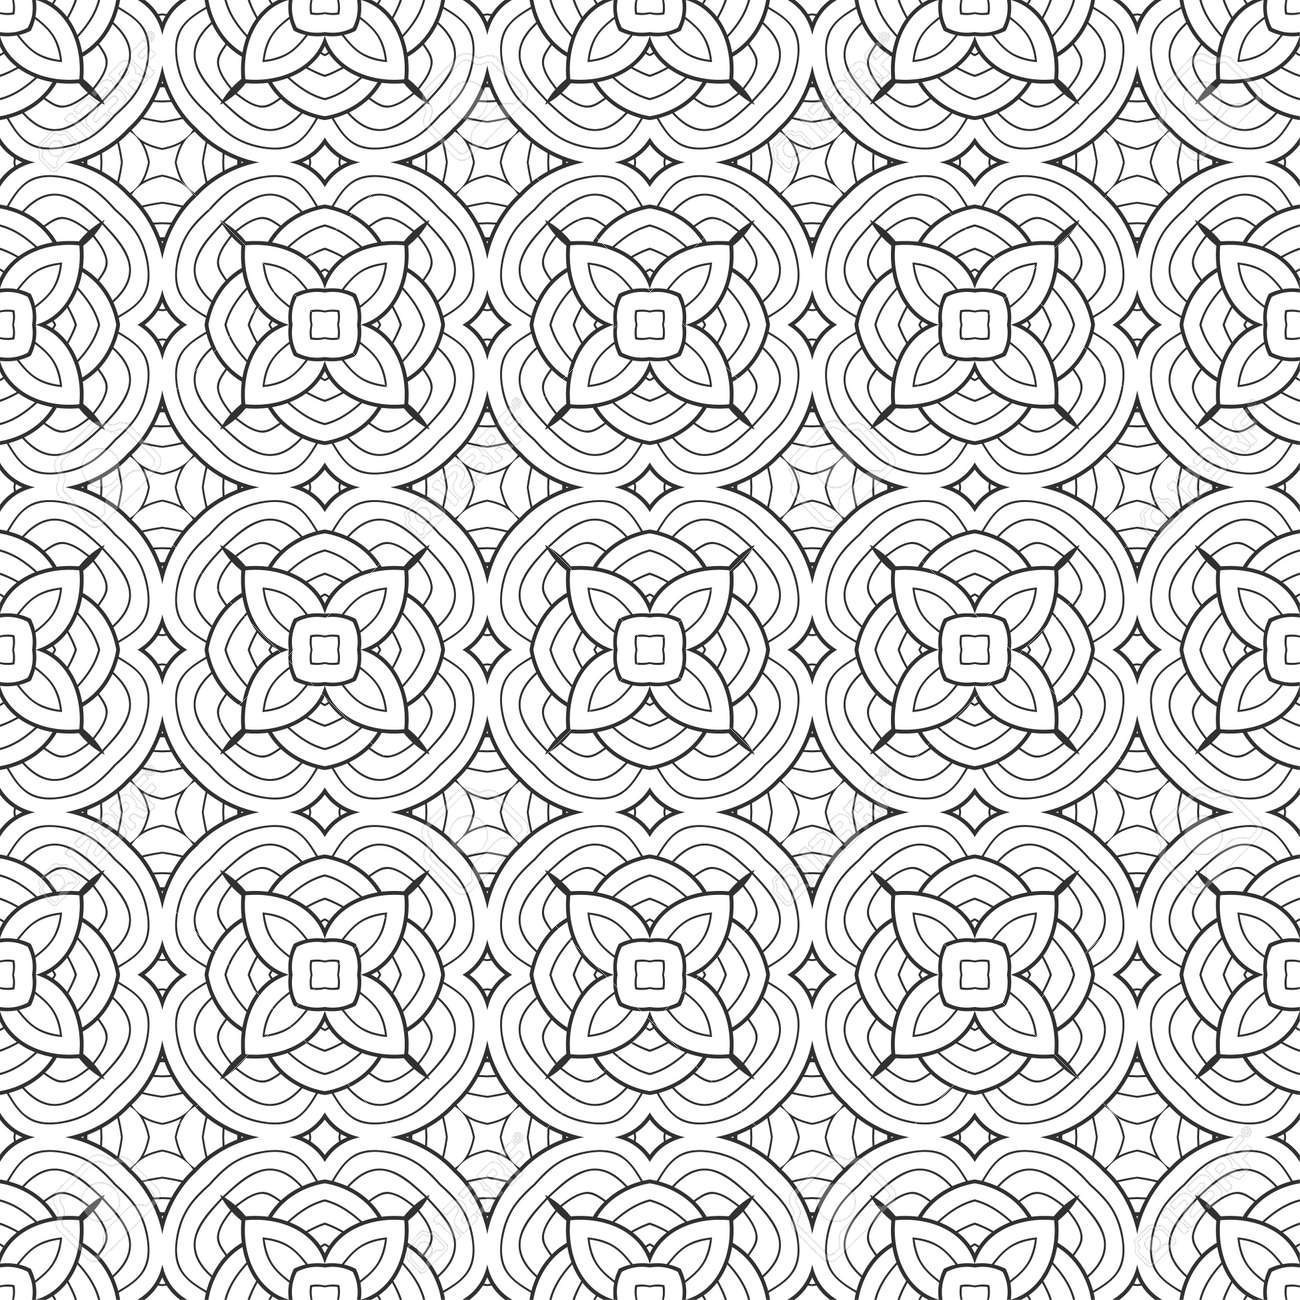 Wallpaper Retro Black And White